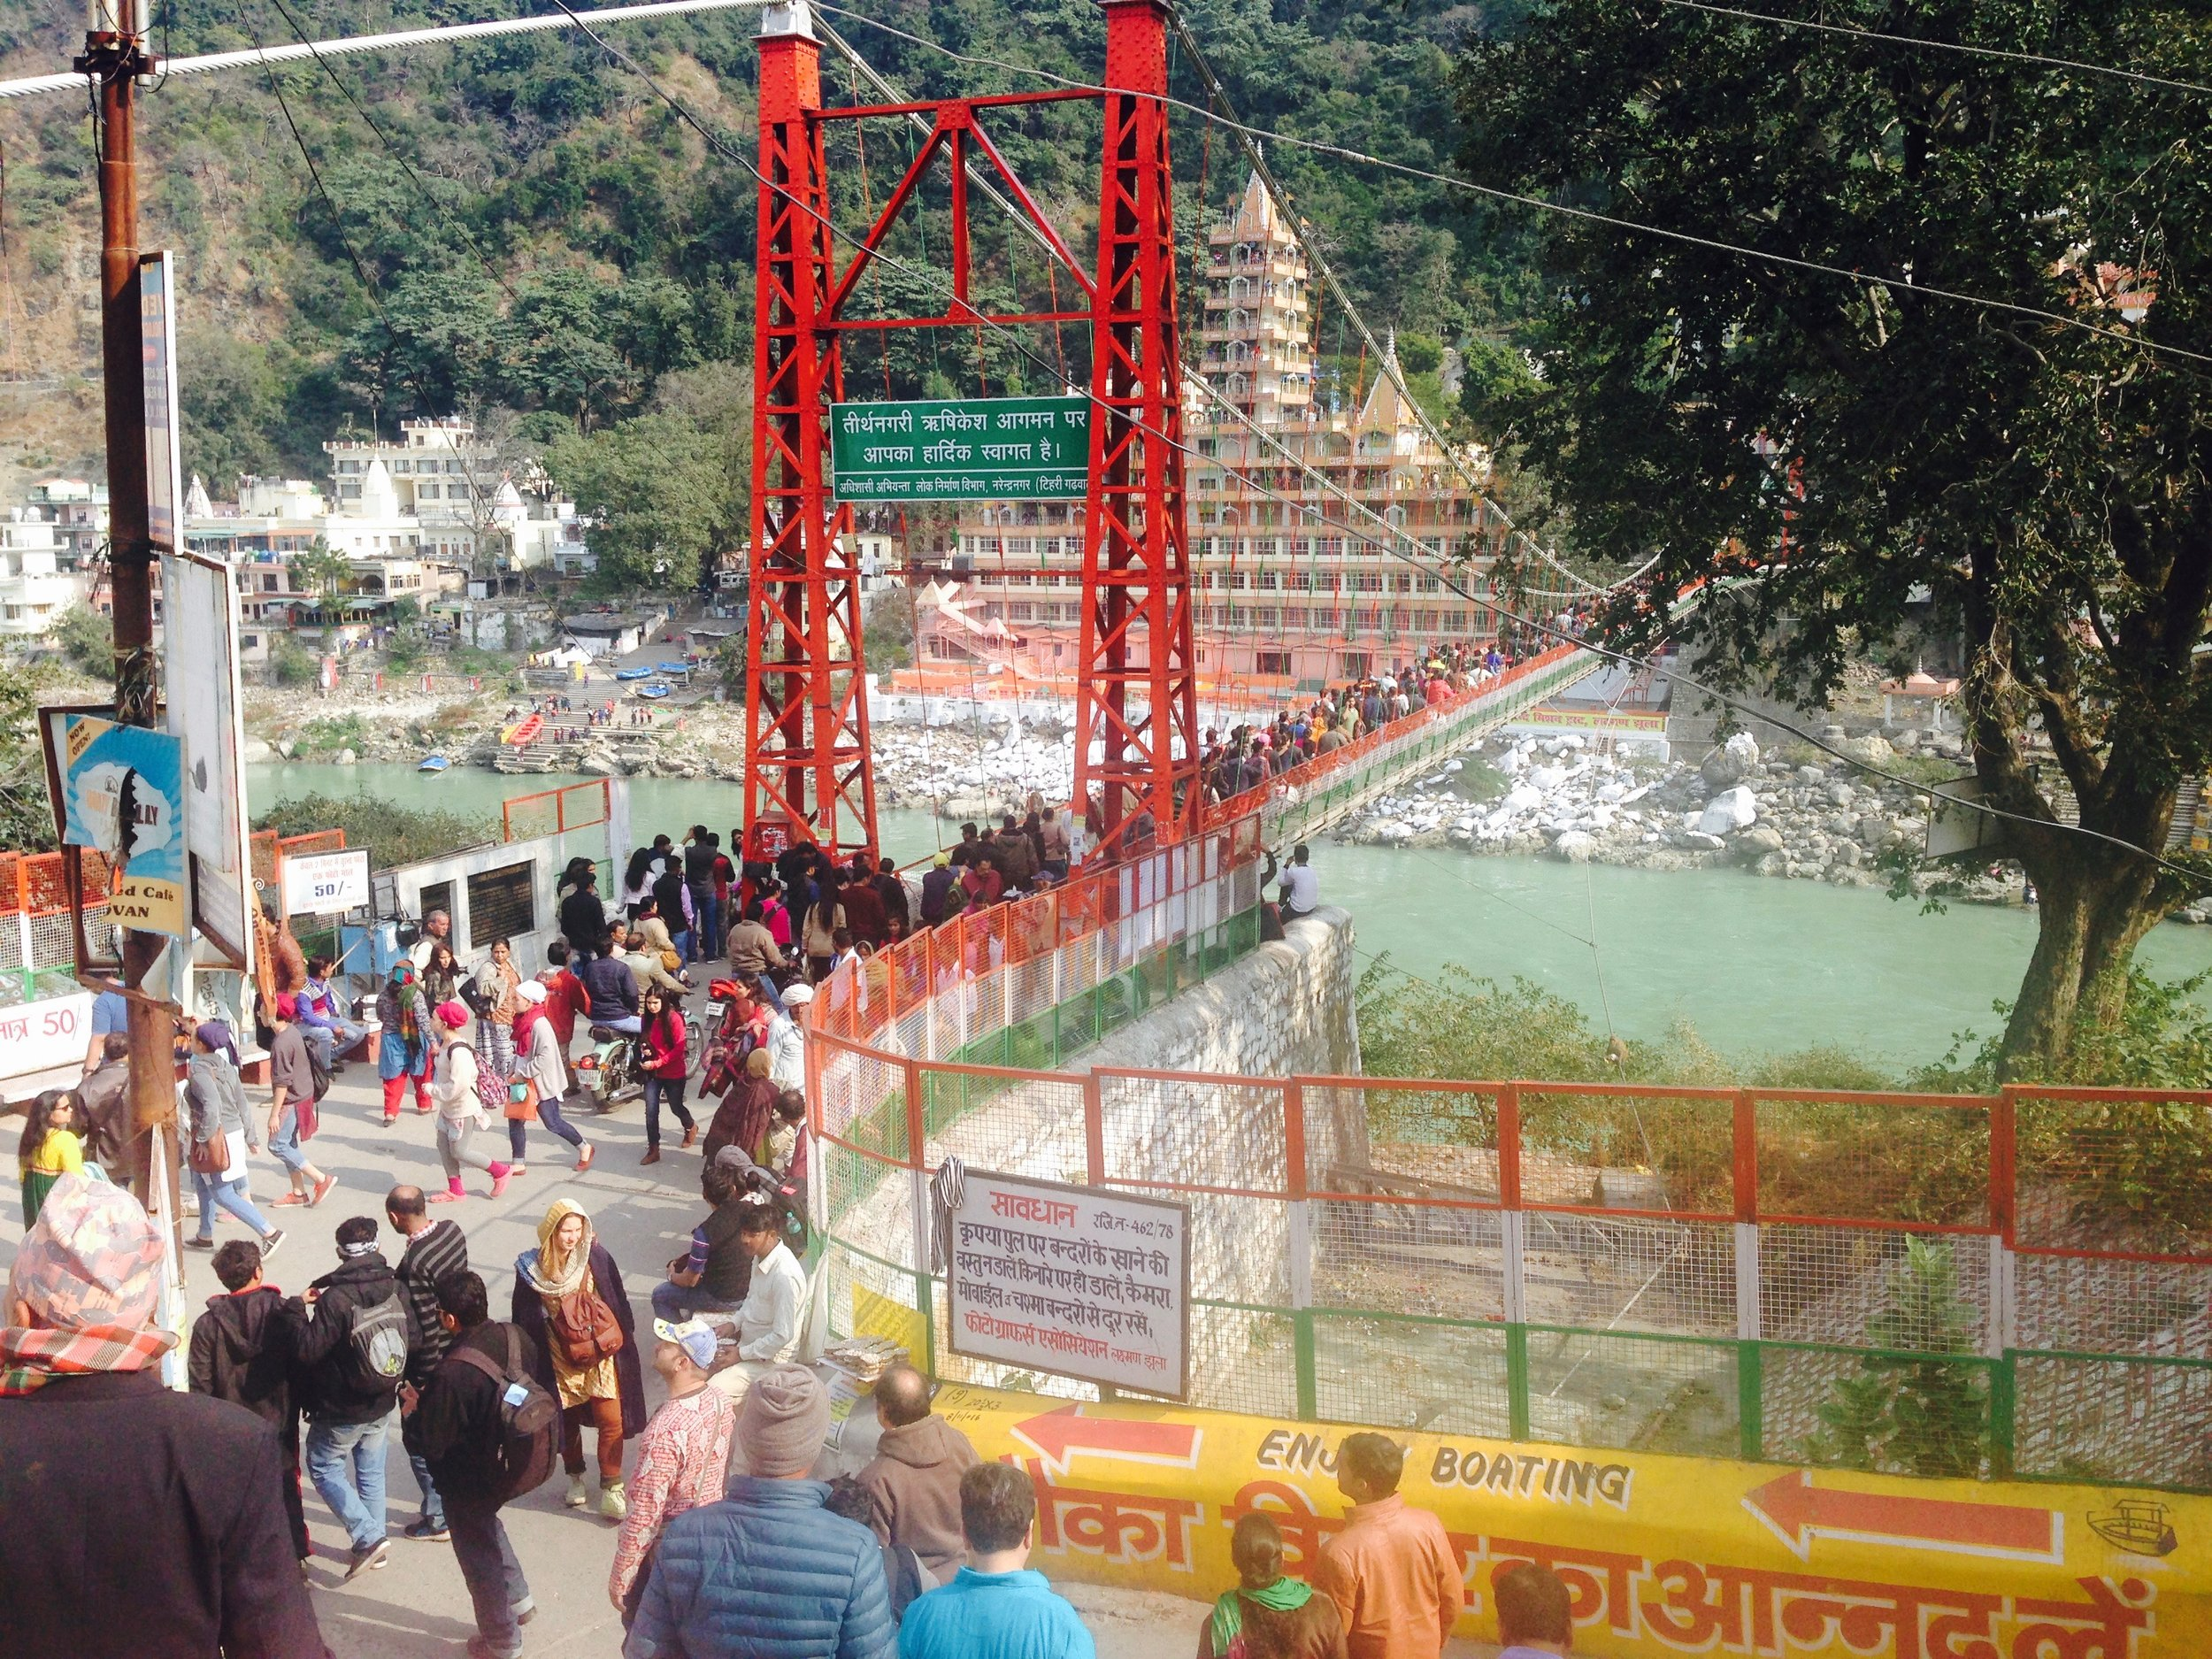 Christmas madness across Laxman Jhula bridge. I stood on the bridge in standstill foot traffic with motorbikes honking from all sides.